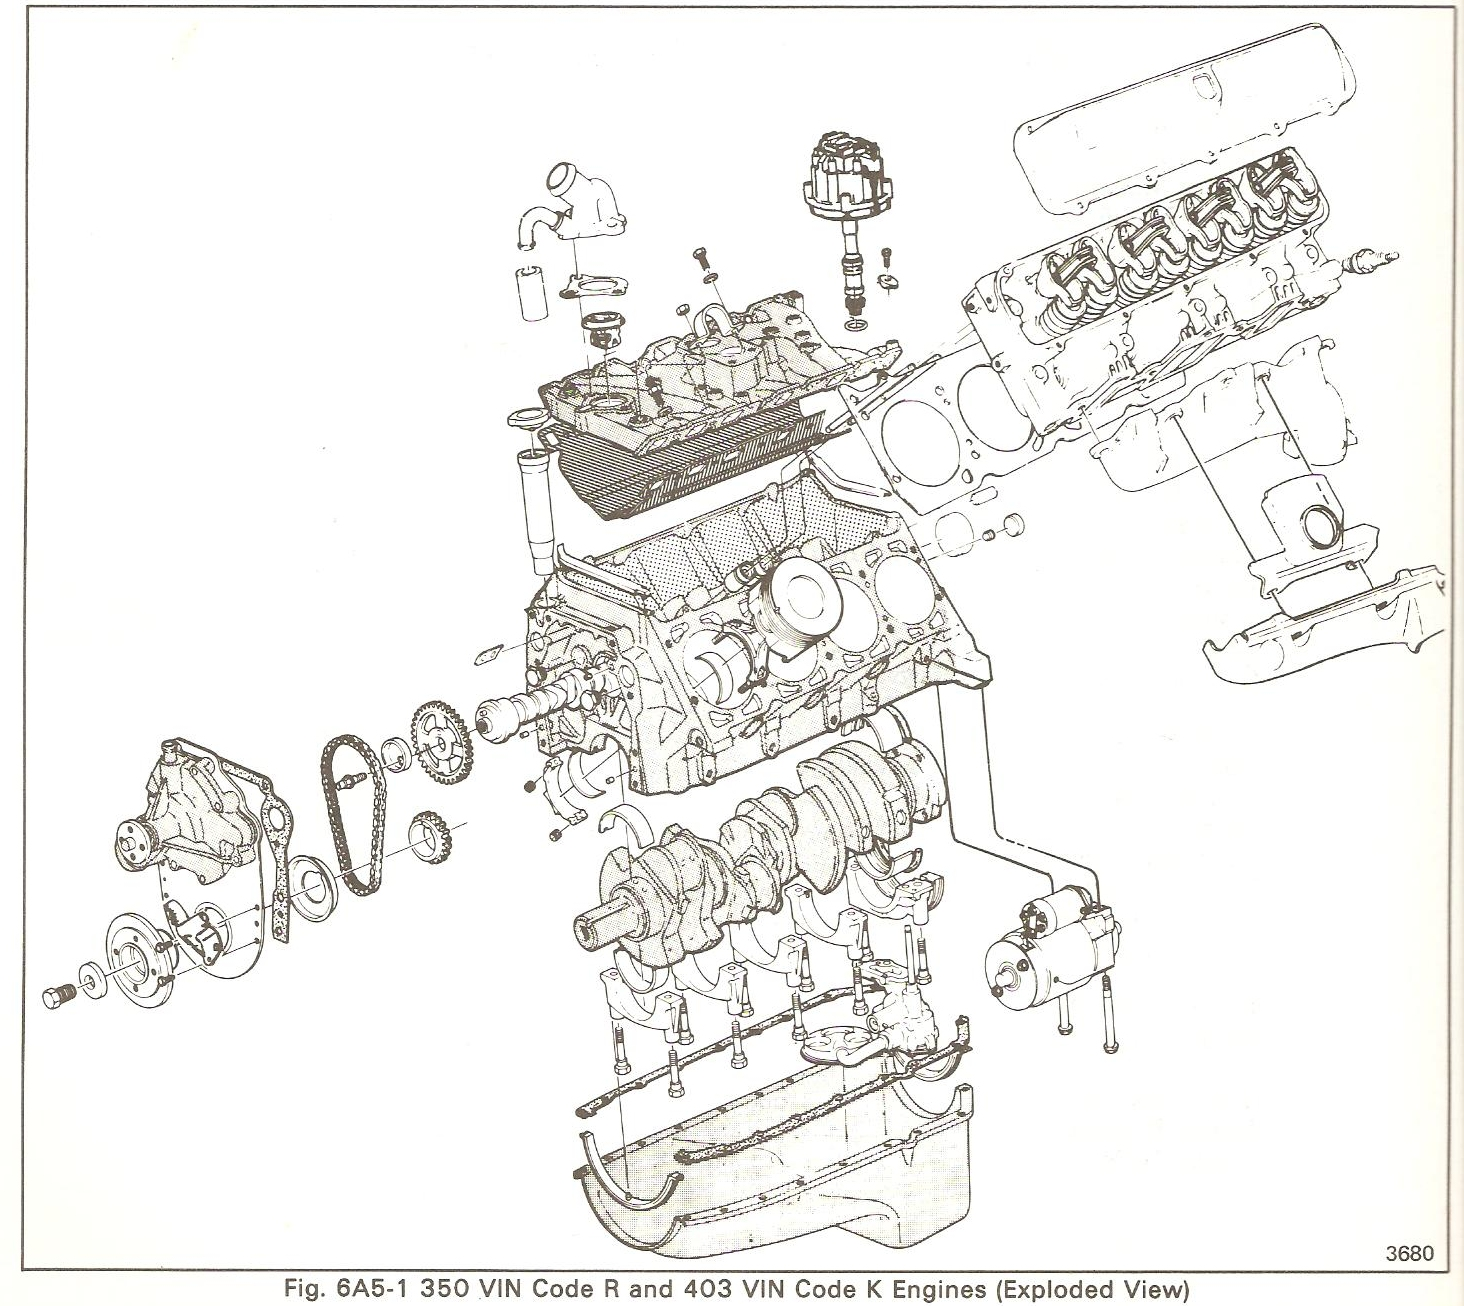 403 Oldsmobile Engine Diagram Just Another Wiring Blog Olds Distributor Library Rh 41 Evitta De Firing Order Buick